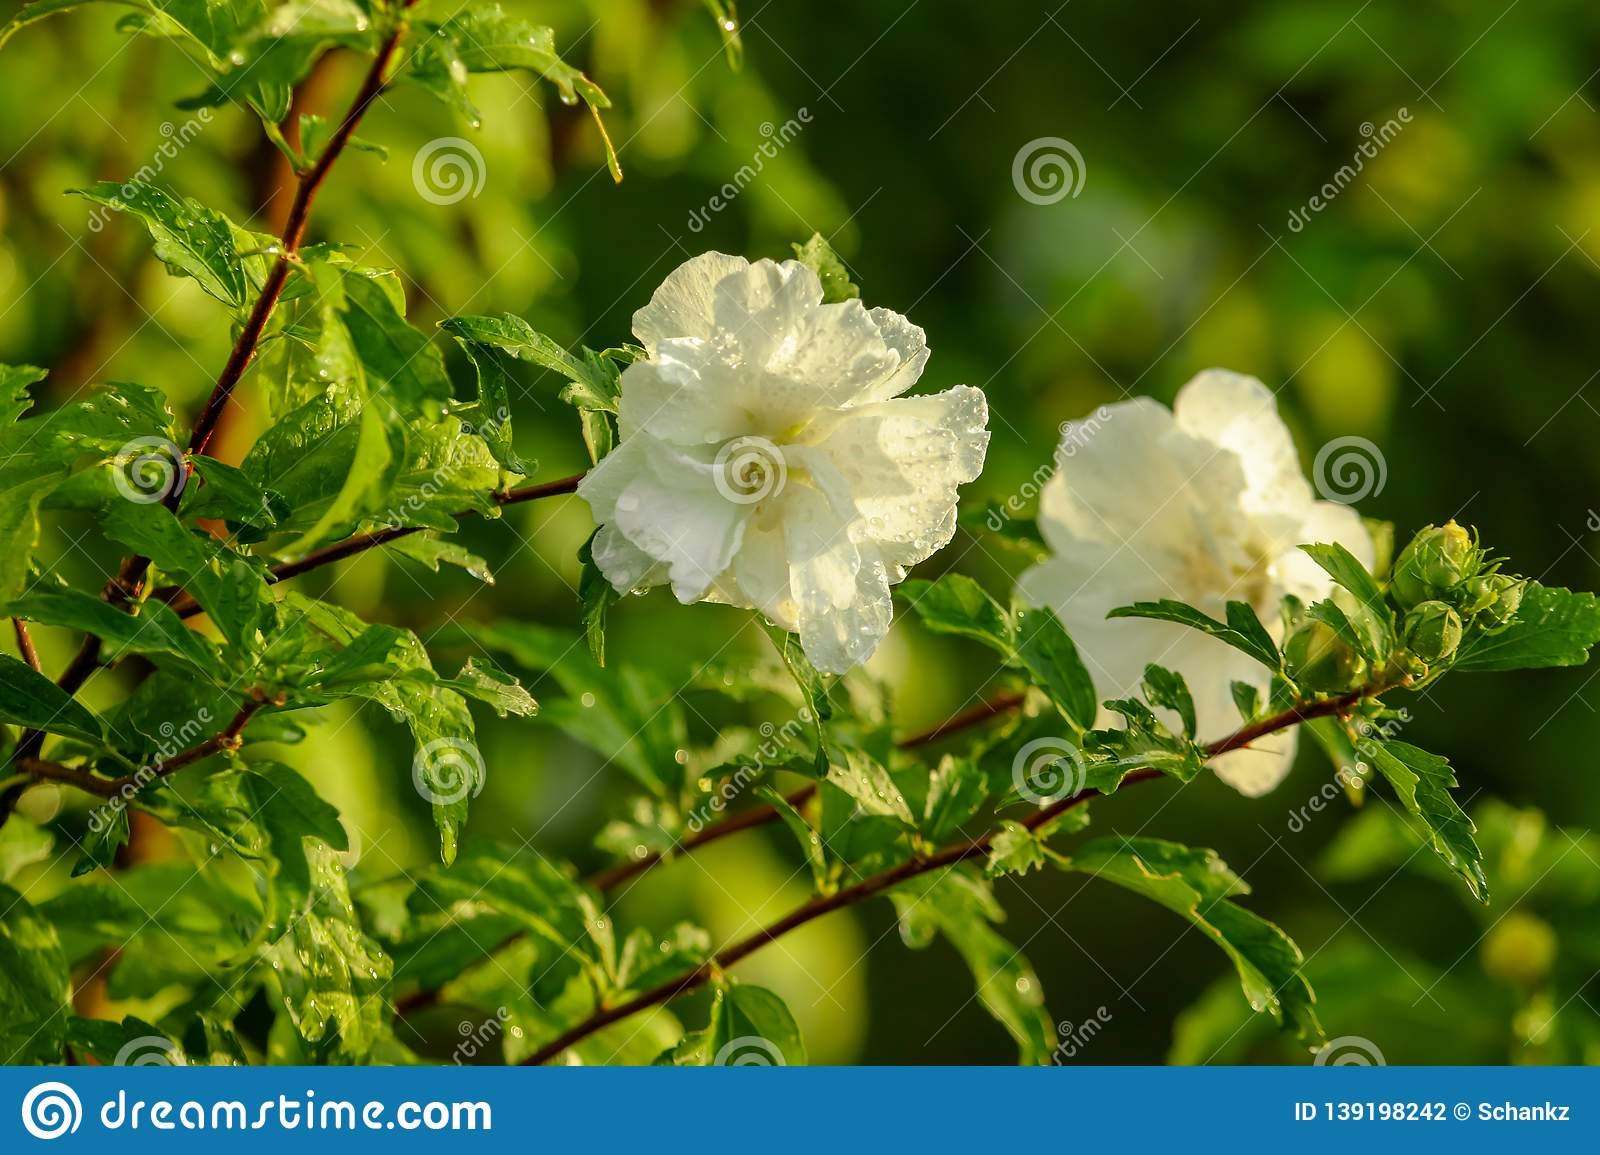 White flowers on a tree in the park